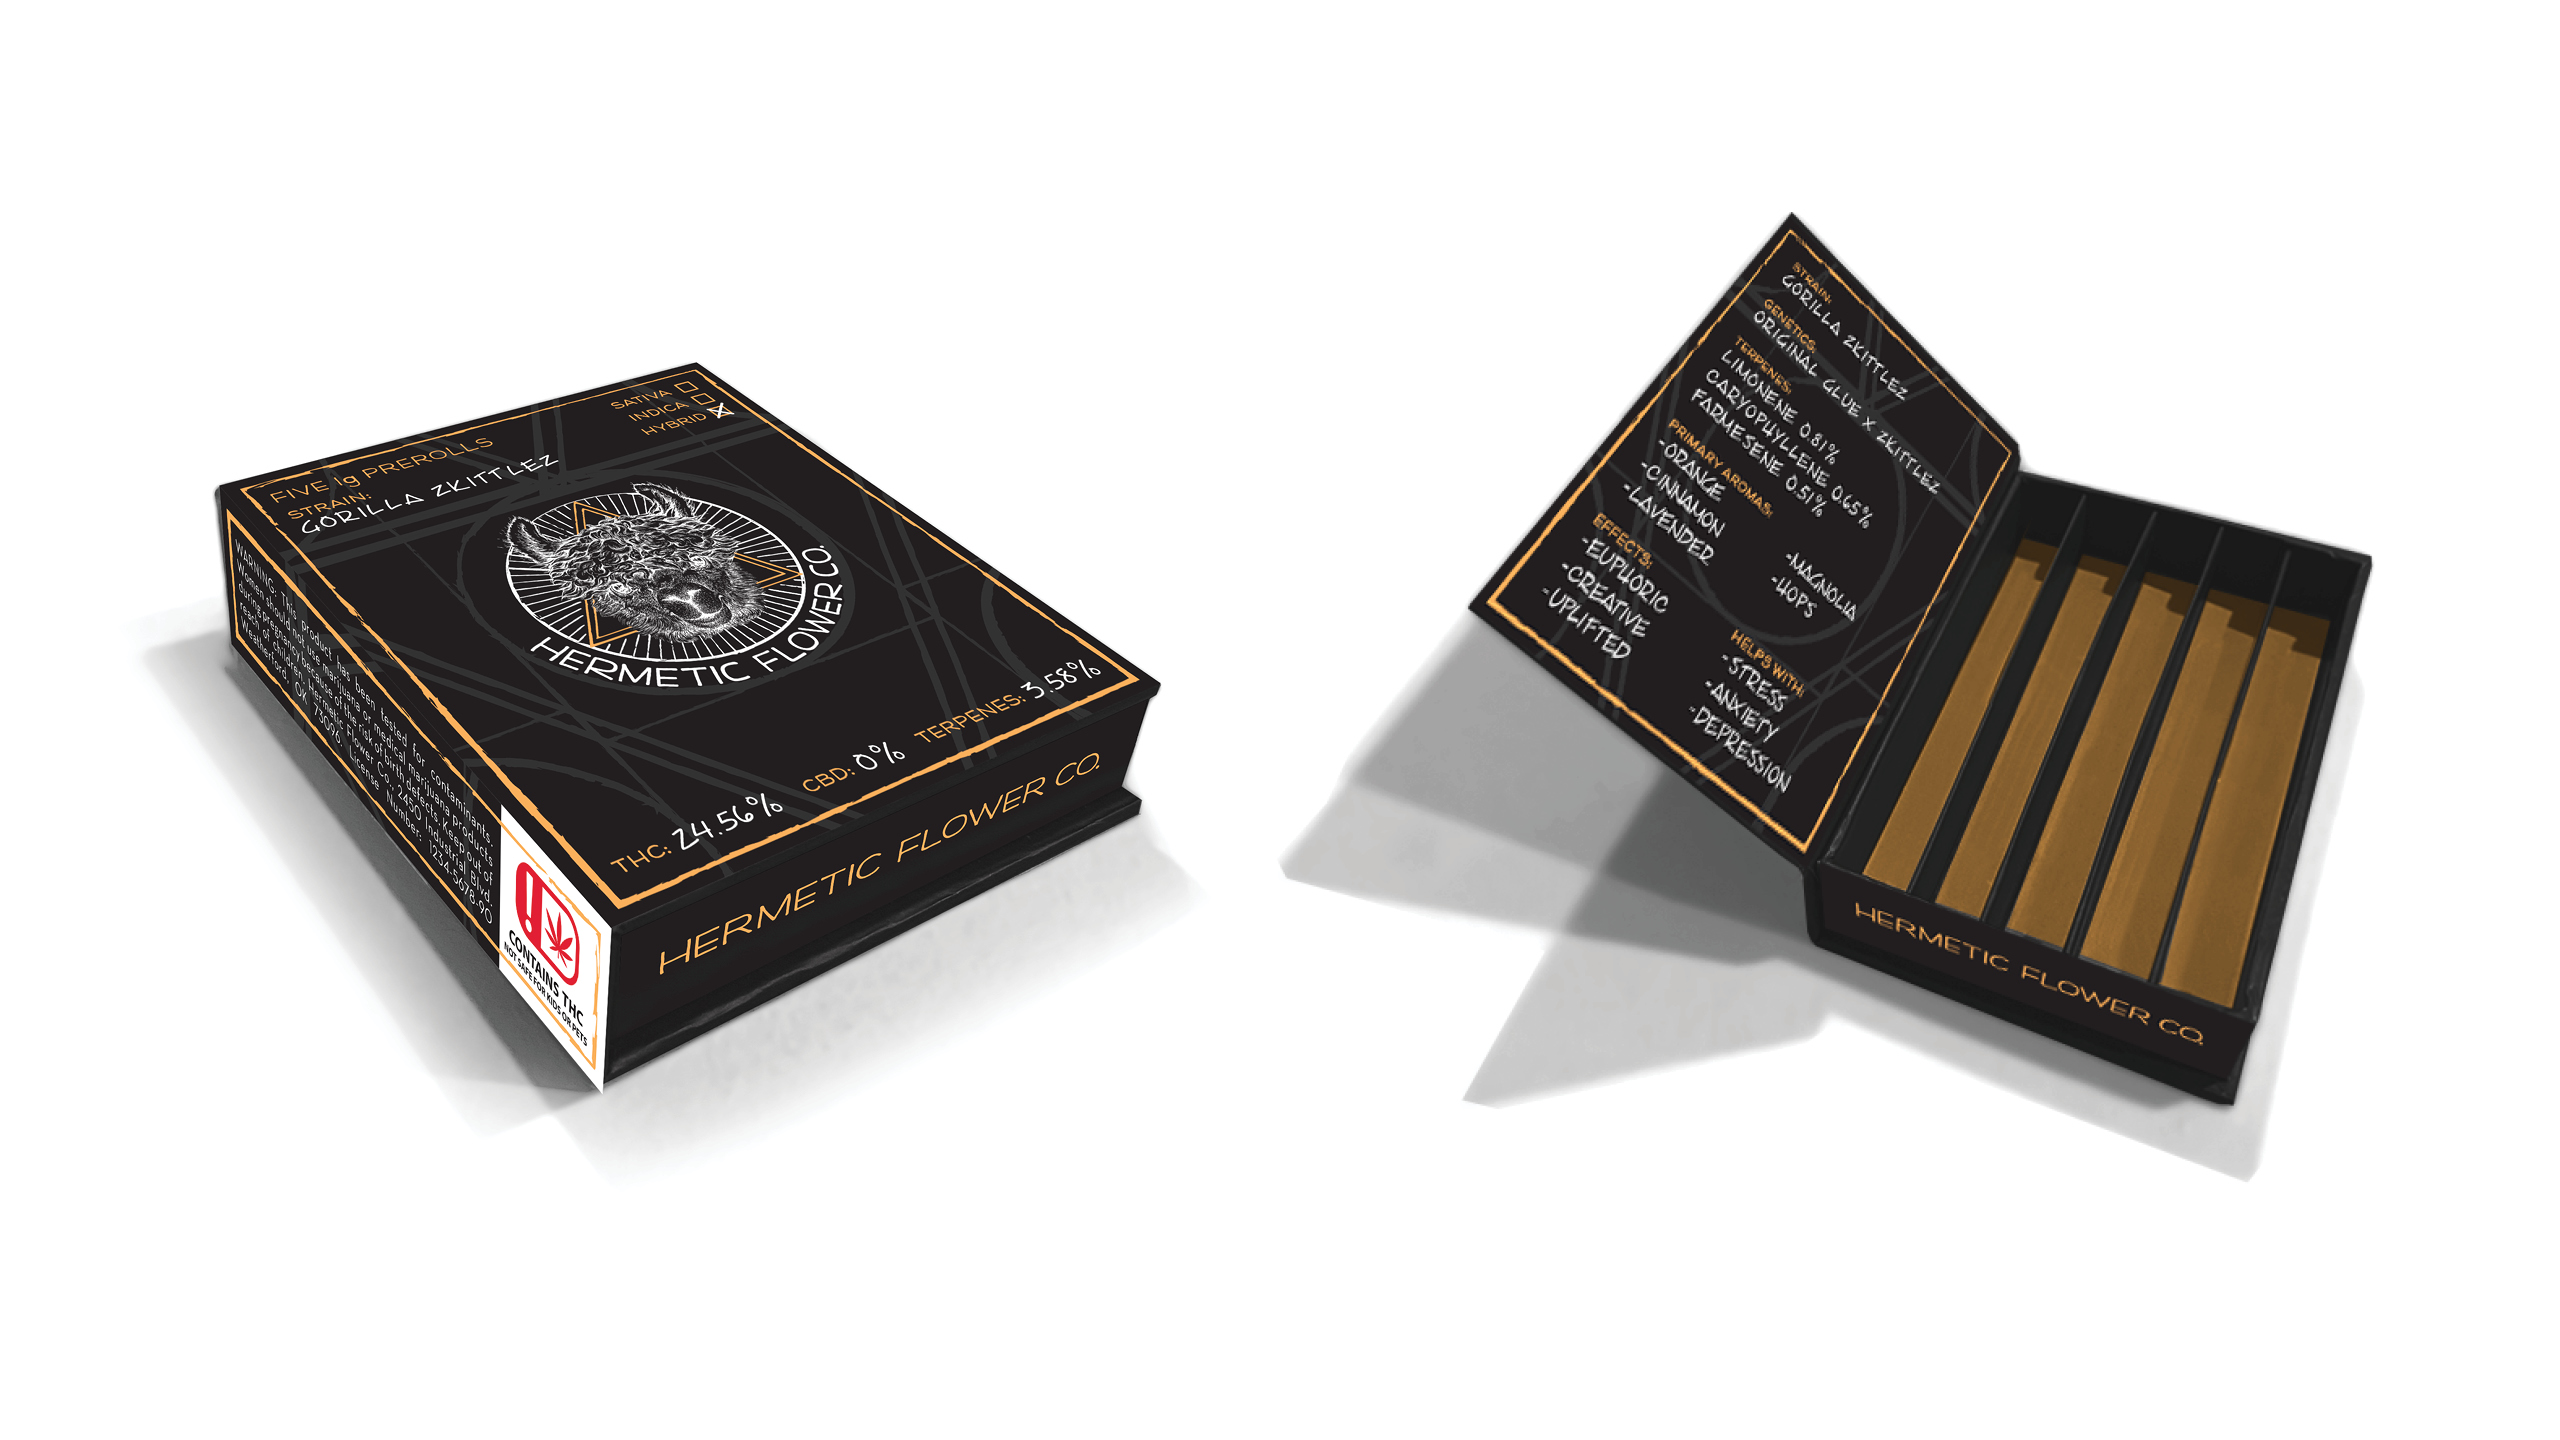 Hermetic Flower Company Product Packaging Design by High Road Design Studio